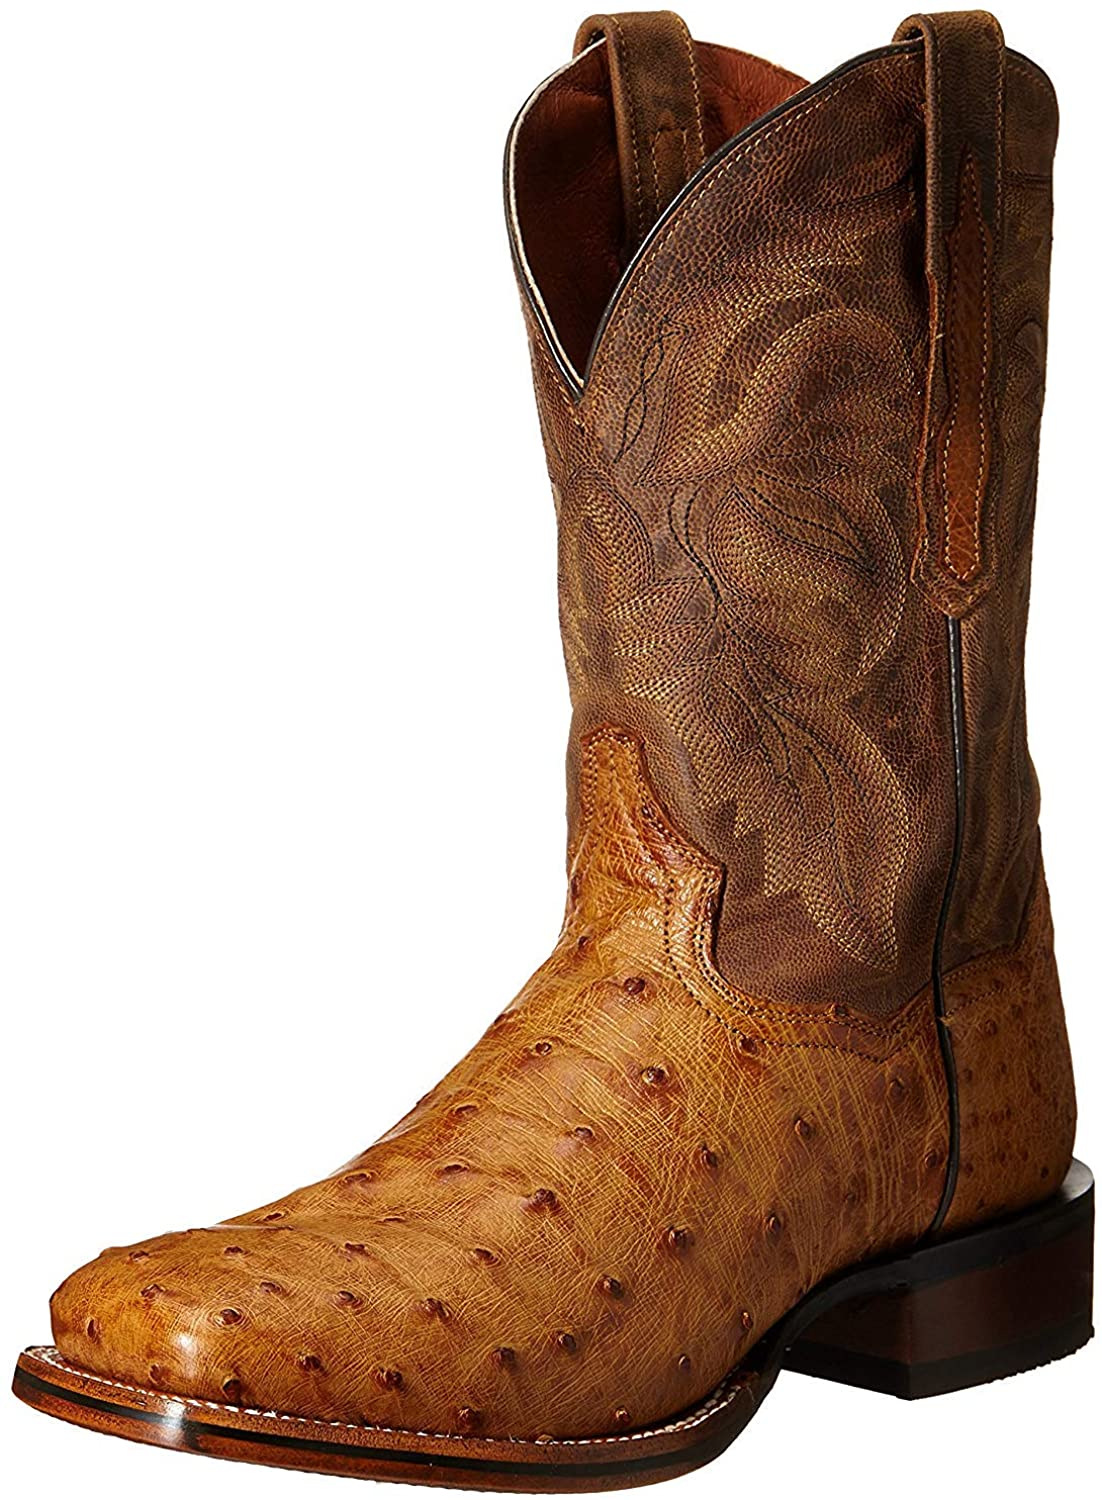 Dan Post Boot Company Mens Square Ostrich Dress Outlet sale feature Alamosa OFFicial site Toe